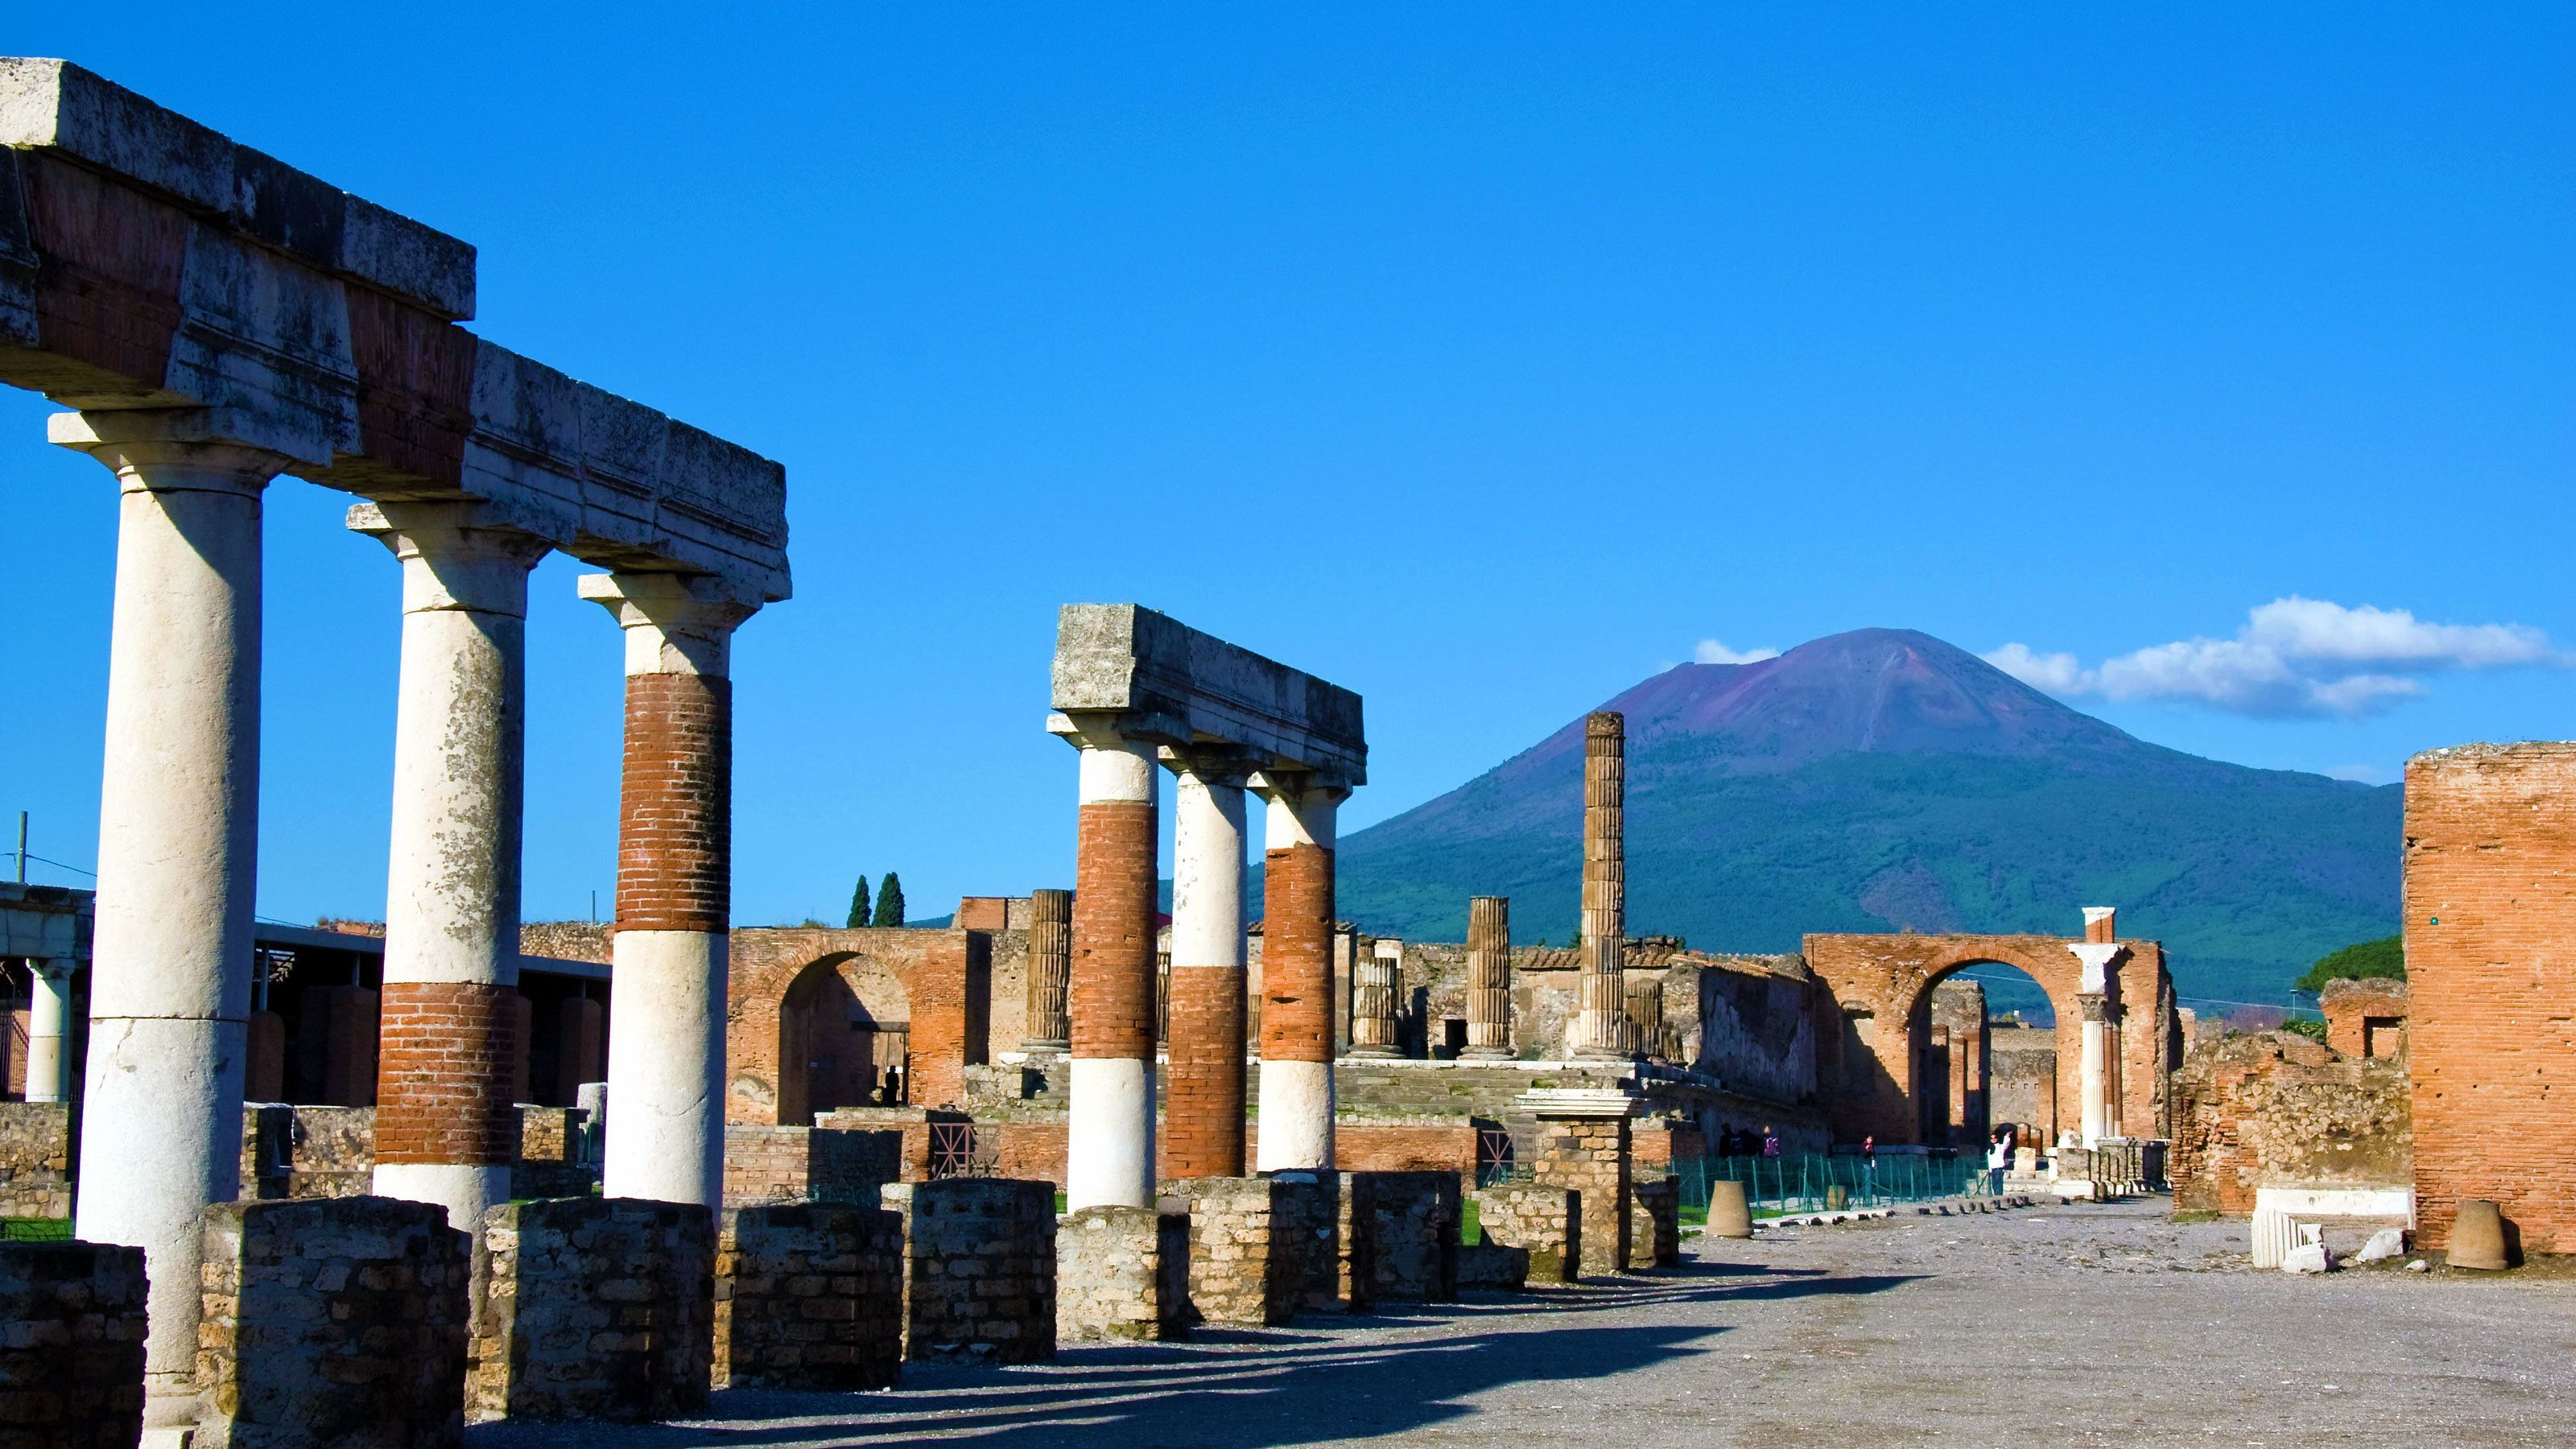 Ruins of the Temple of Jupiter with Mount Vesuvius in the background in Pompeii